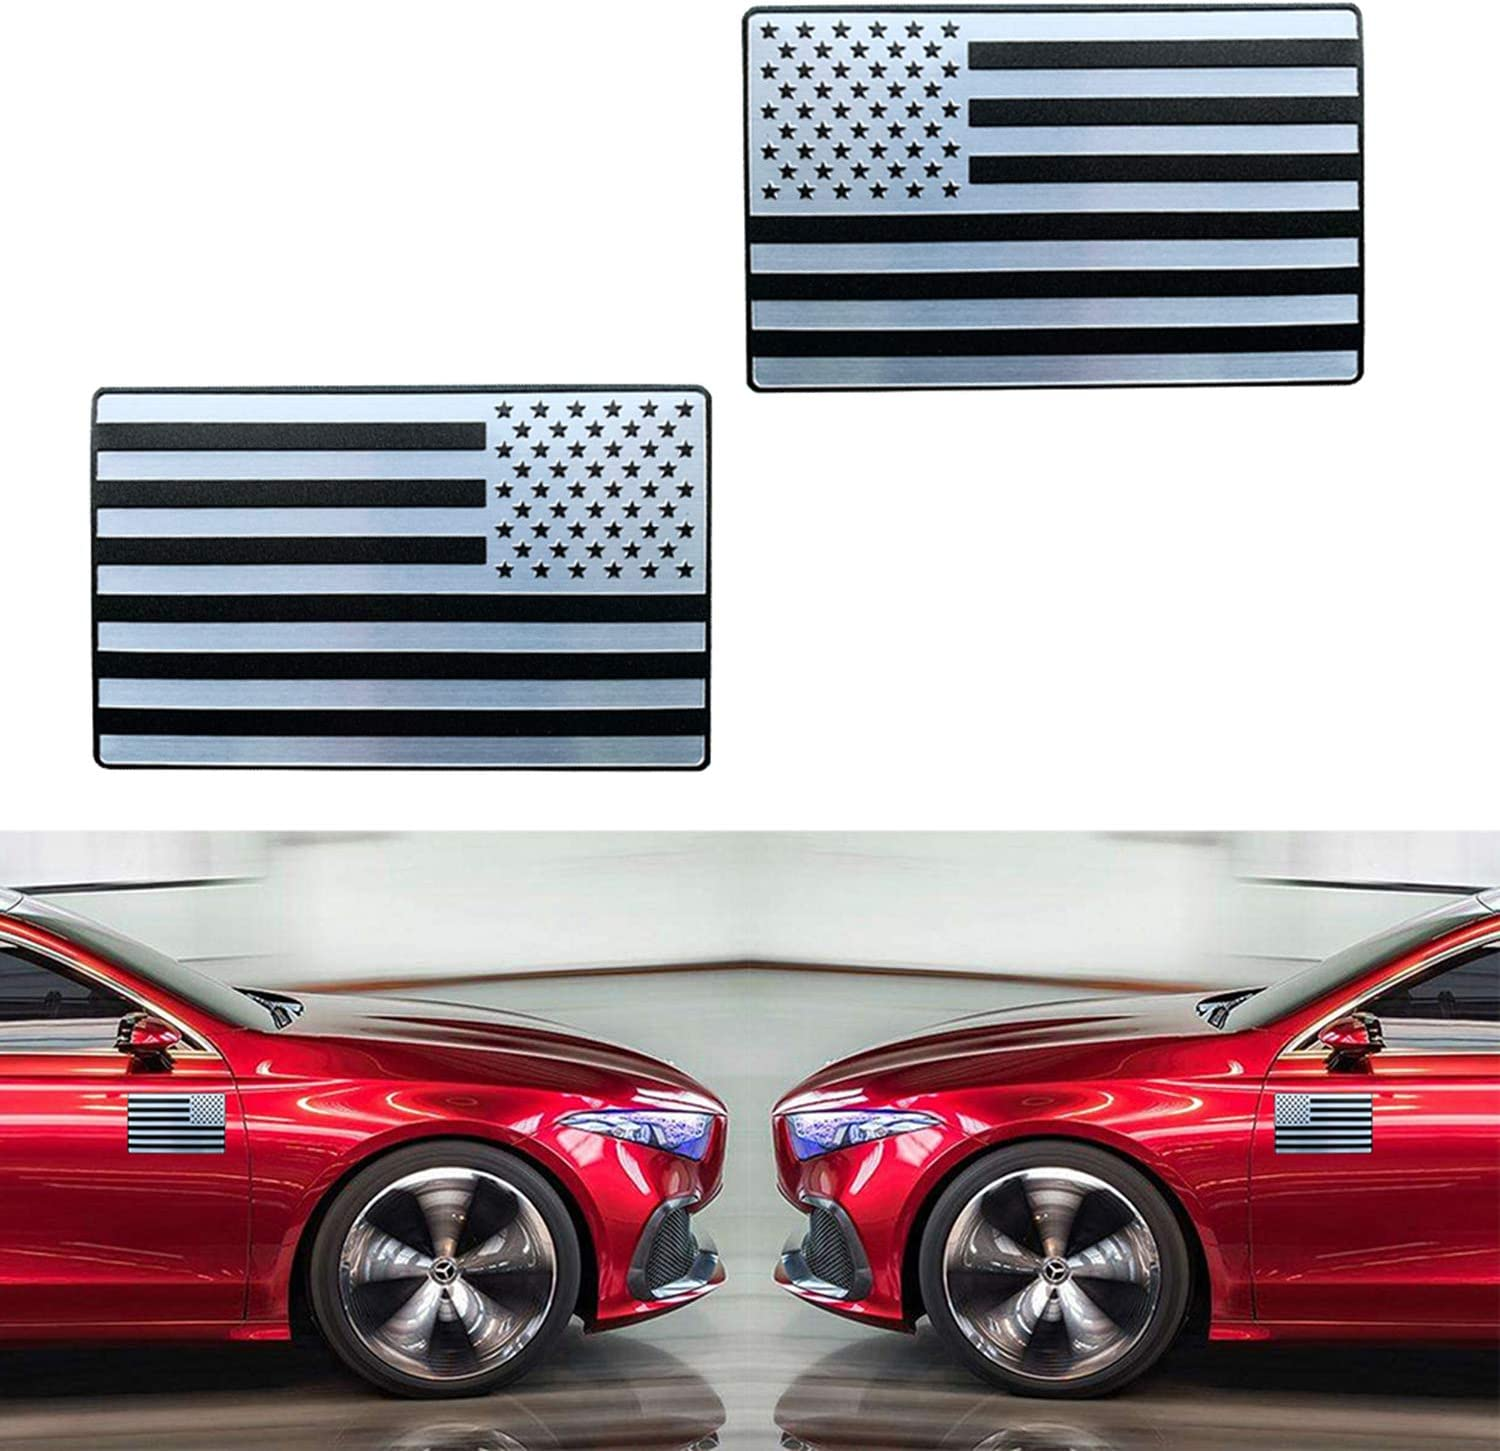 CARSA USA American Flag Decal Sticker Auto Emblem for Car Truck Forward and Reverse Set of 2